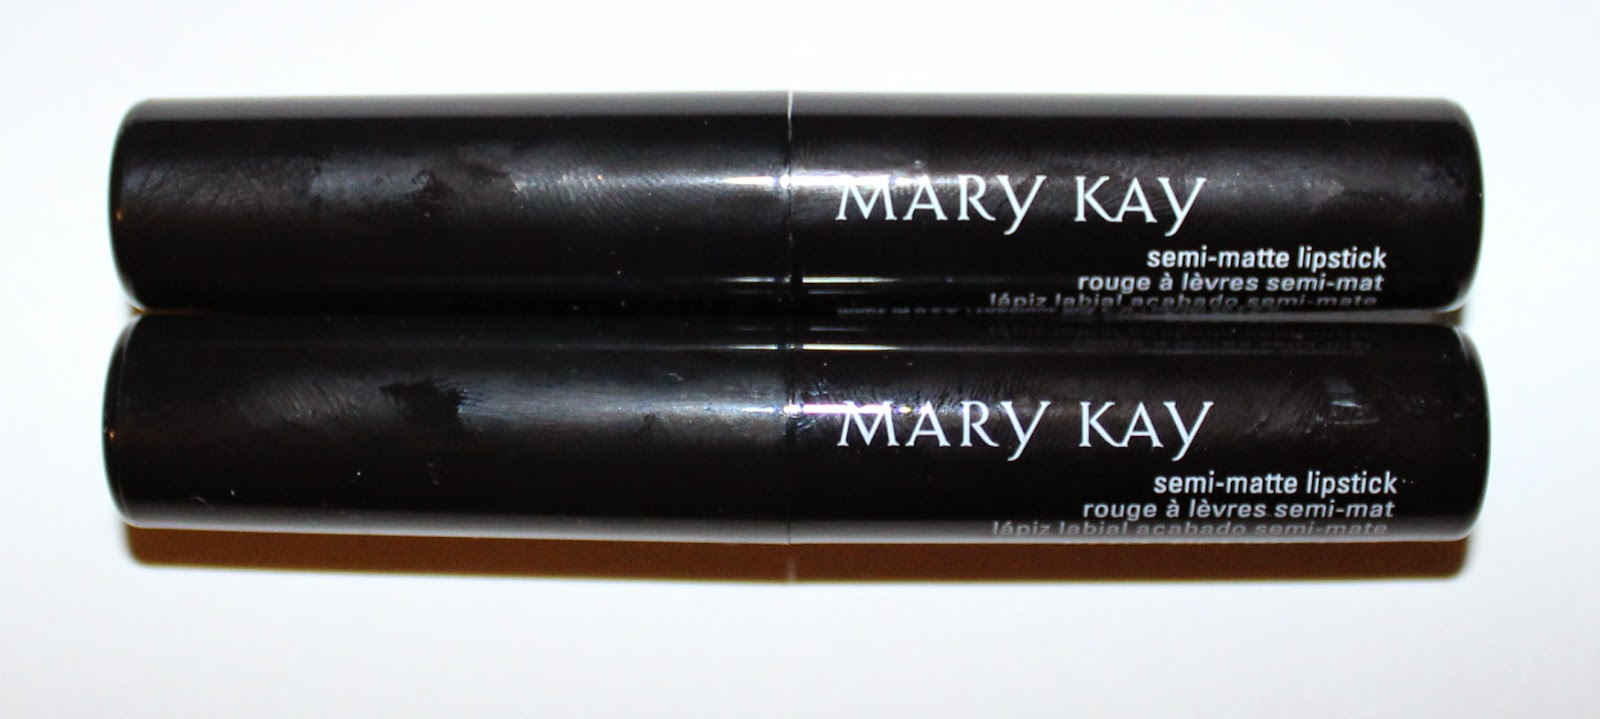 Mary Kay Semi-Matte Lipstick in Pink Moonstone & Ruby Night